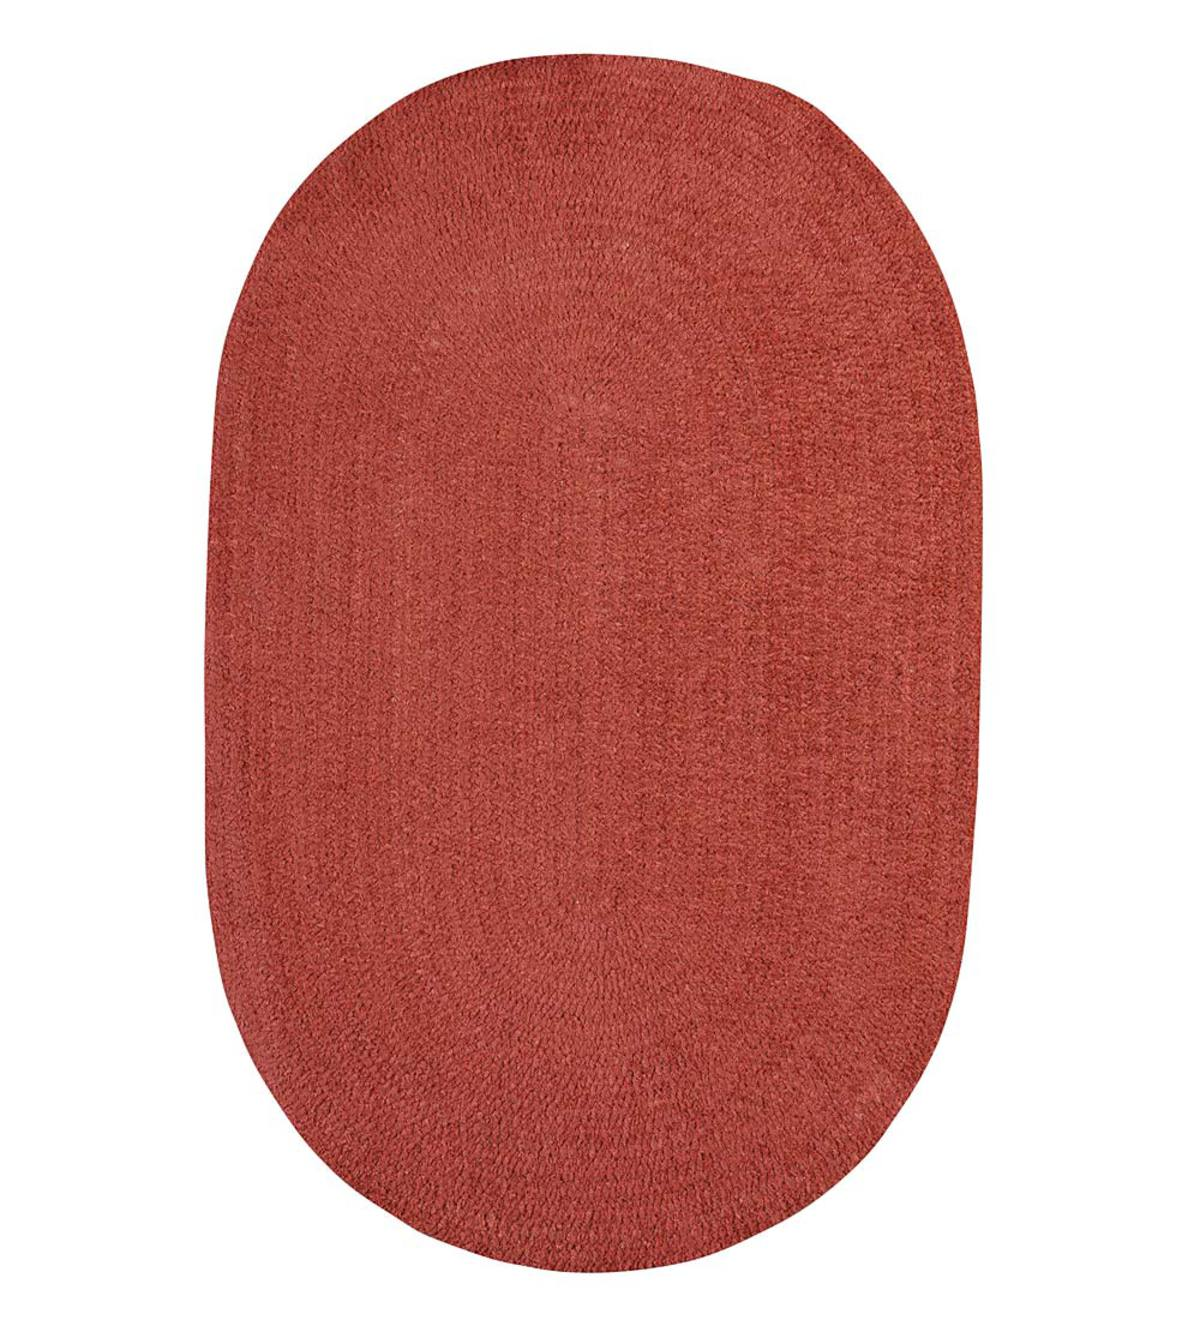 Chenille Oval Braided Area Rug, 2' x 3' - Marsala